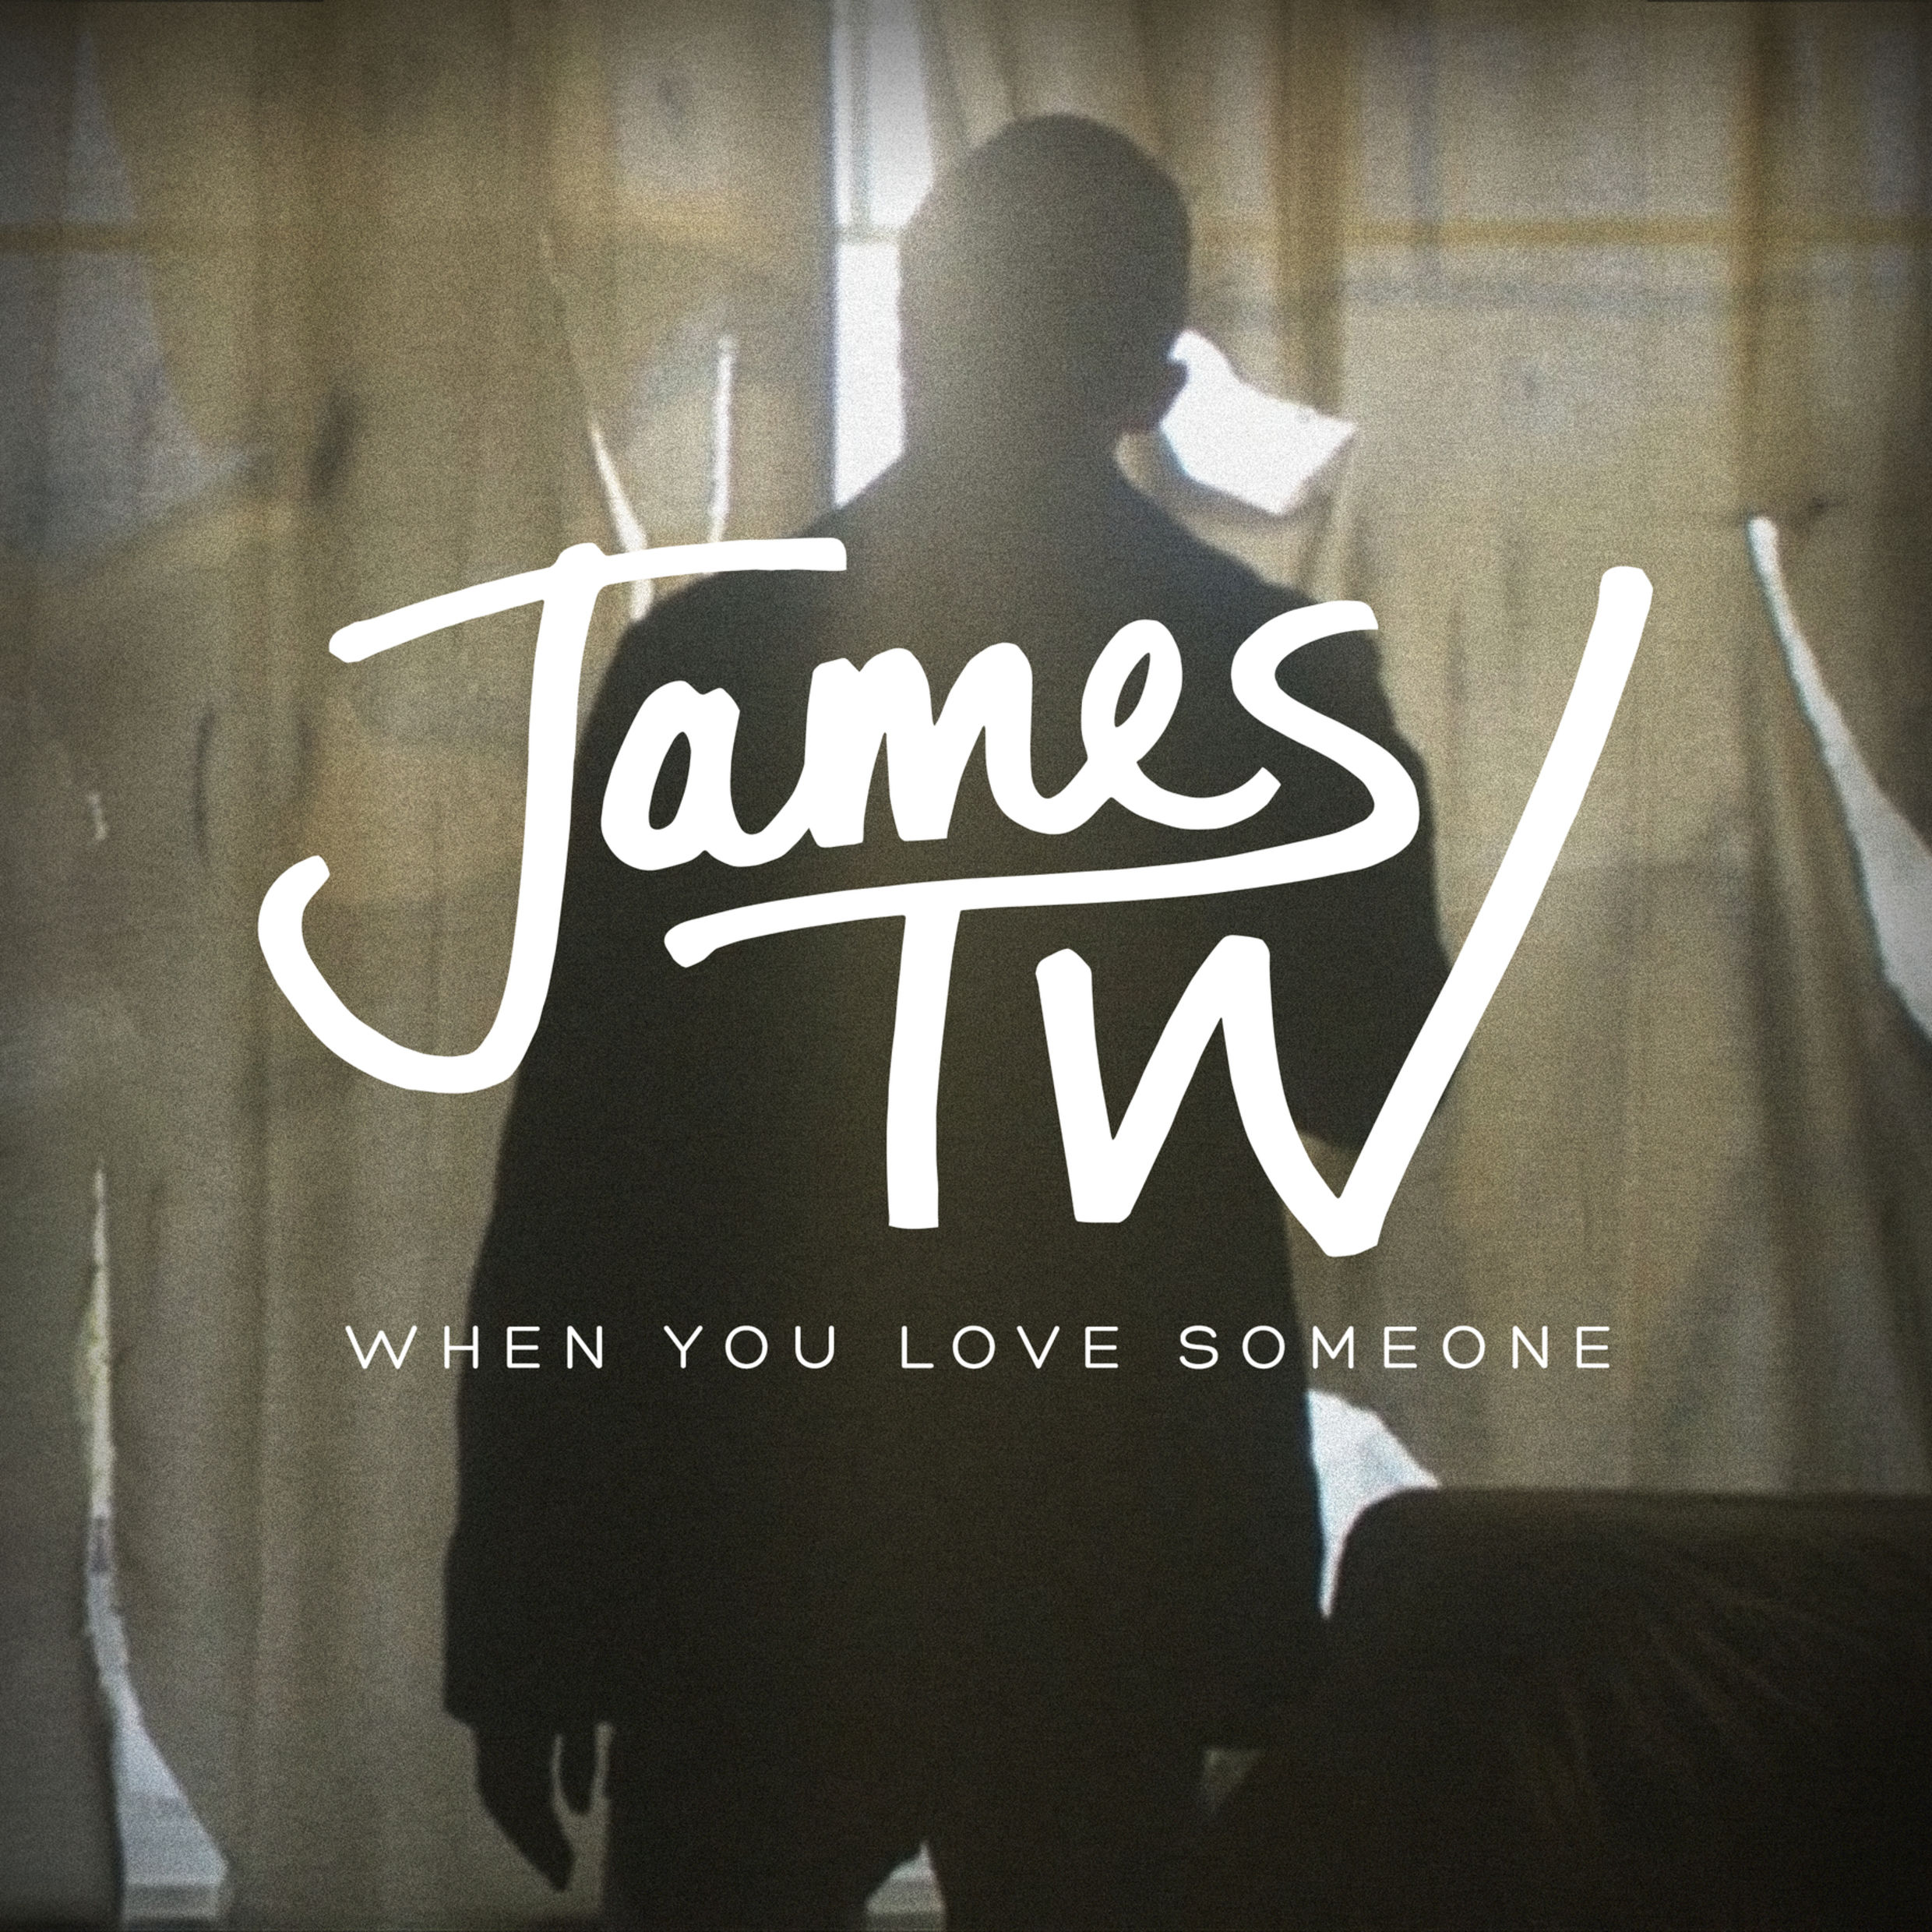 James tw when you love someone 2016